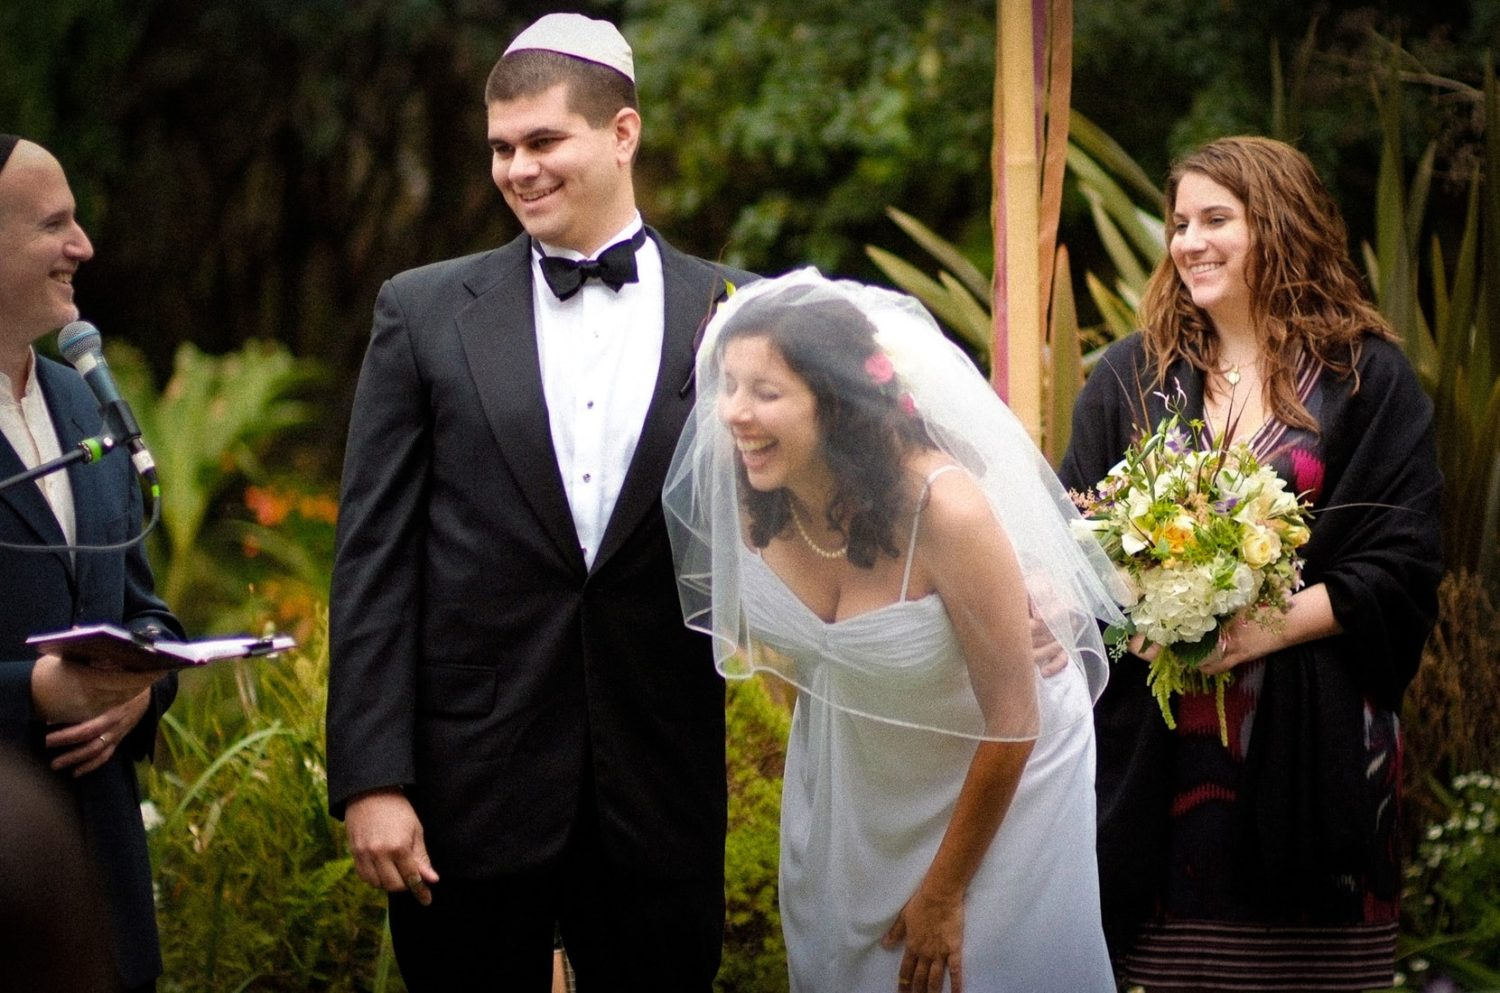 A groom wearing a suit and tie standing next to his bride wearing her wedding dress and veil under the chuppah at their Jewish Wedding